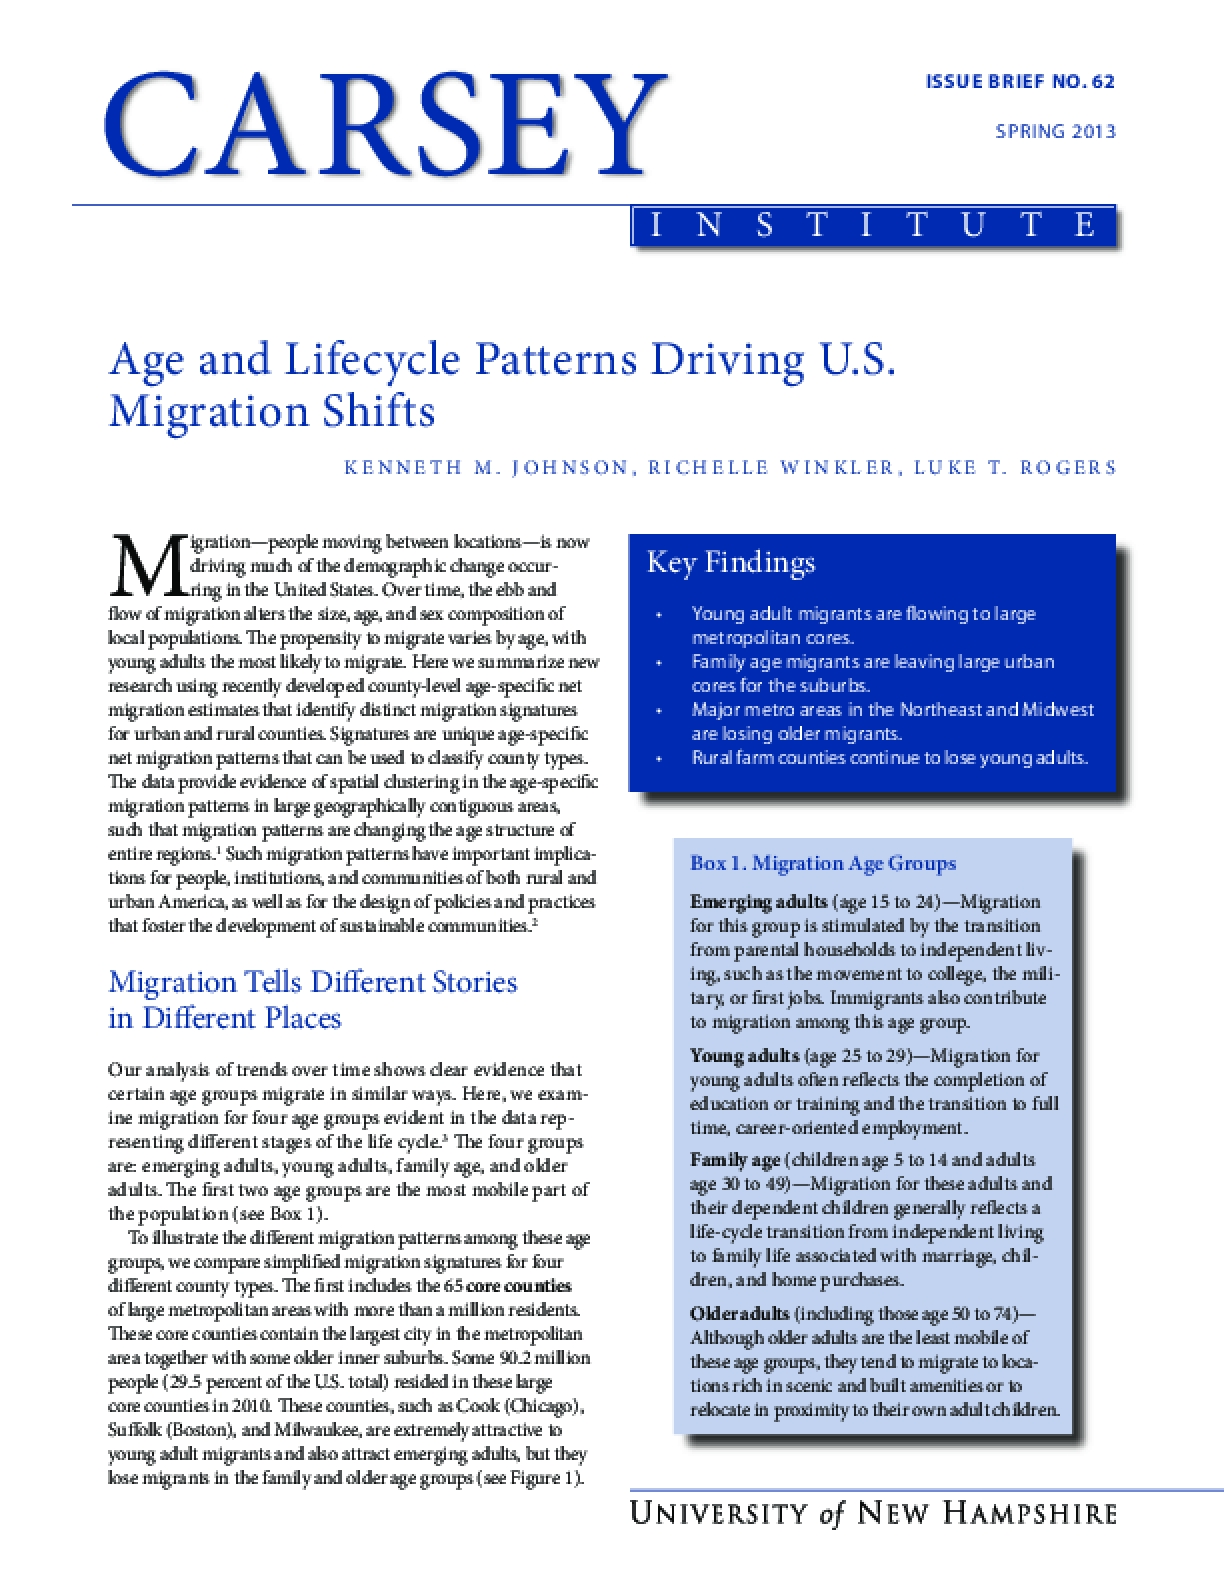 Age and Lifecycle Patterns Driving U.S. Migration Shifts